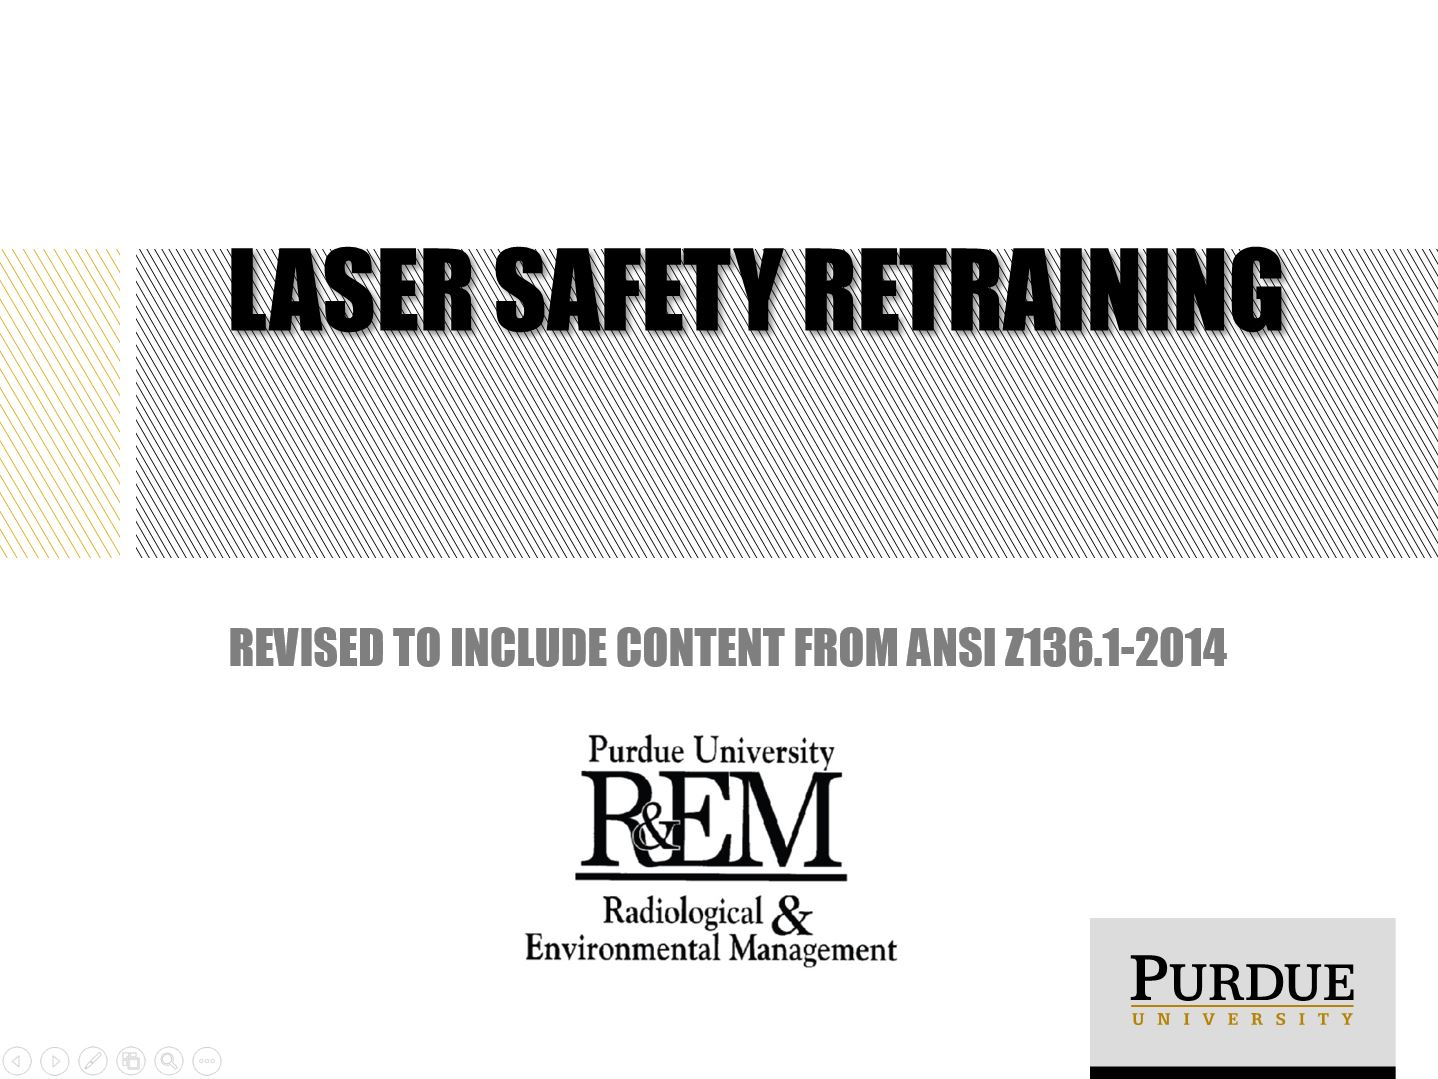 training - Radiological & Environmental Management - Purdue University